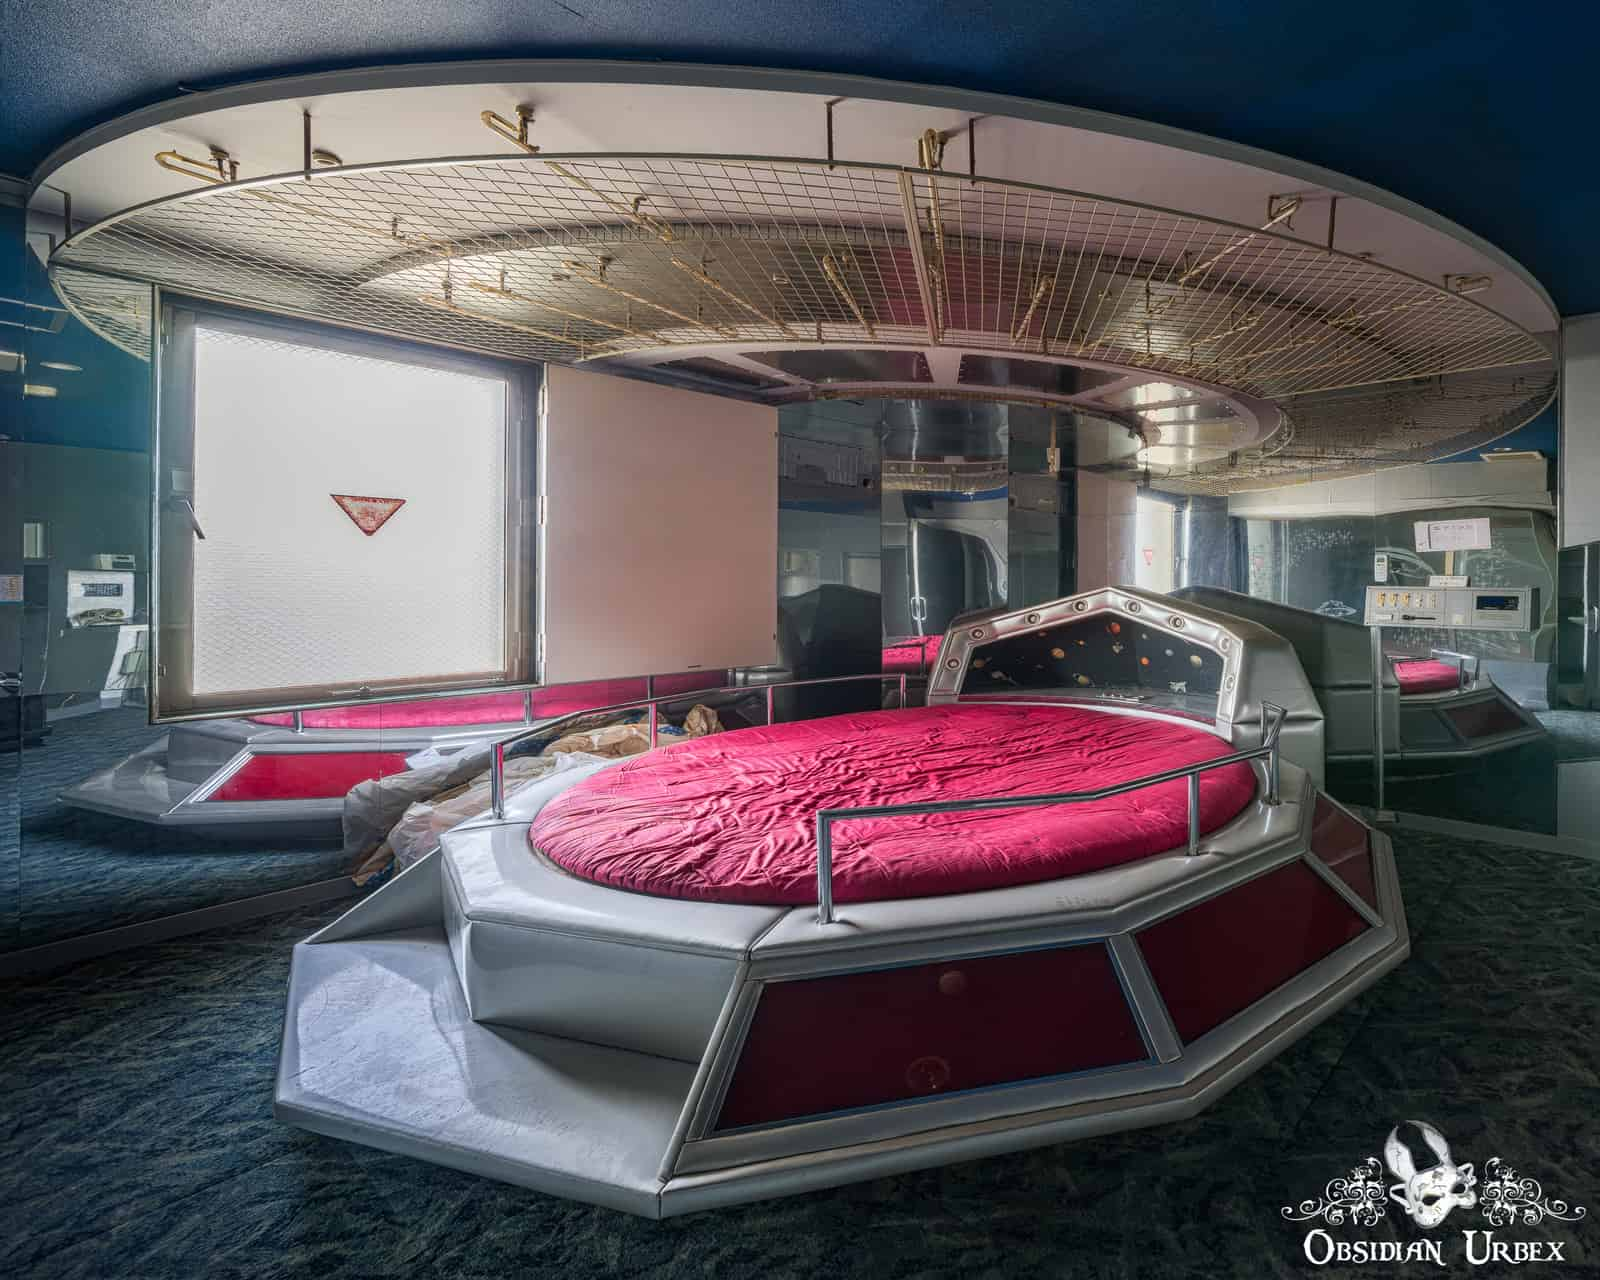 Spaceship Love Hotel Japan Obsidian Urbex Photography